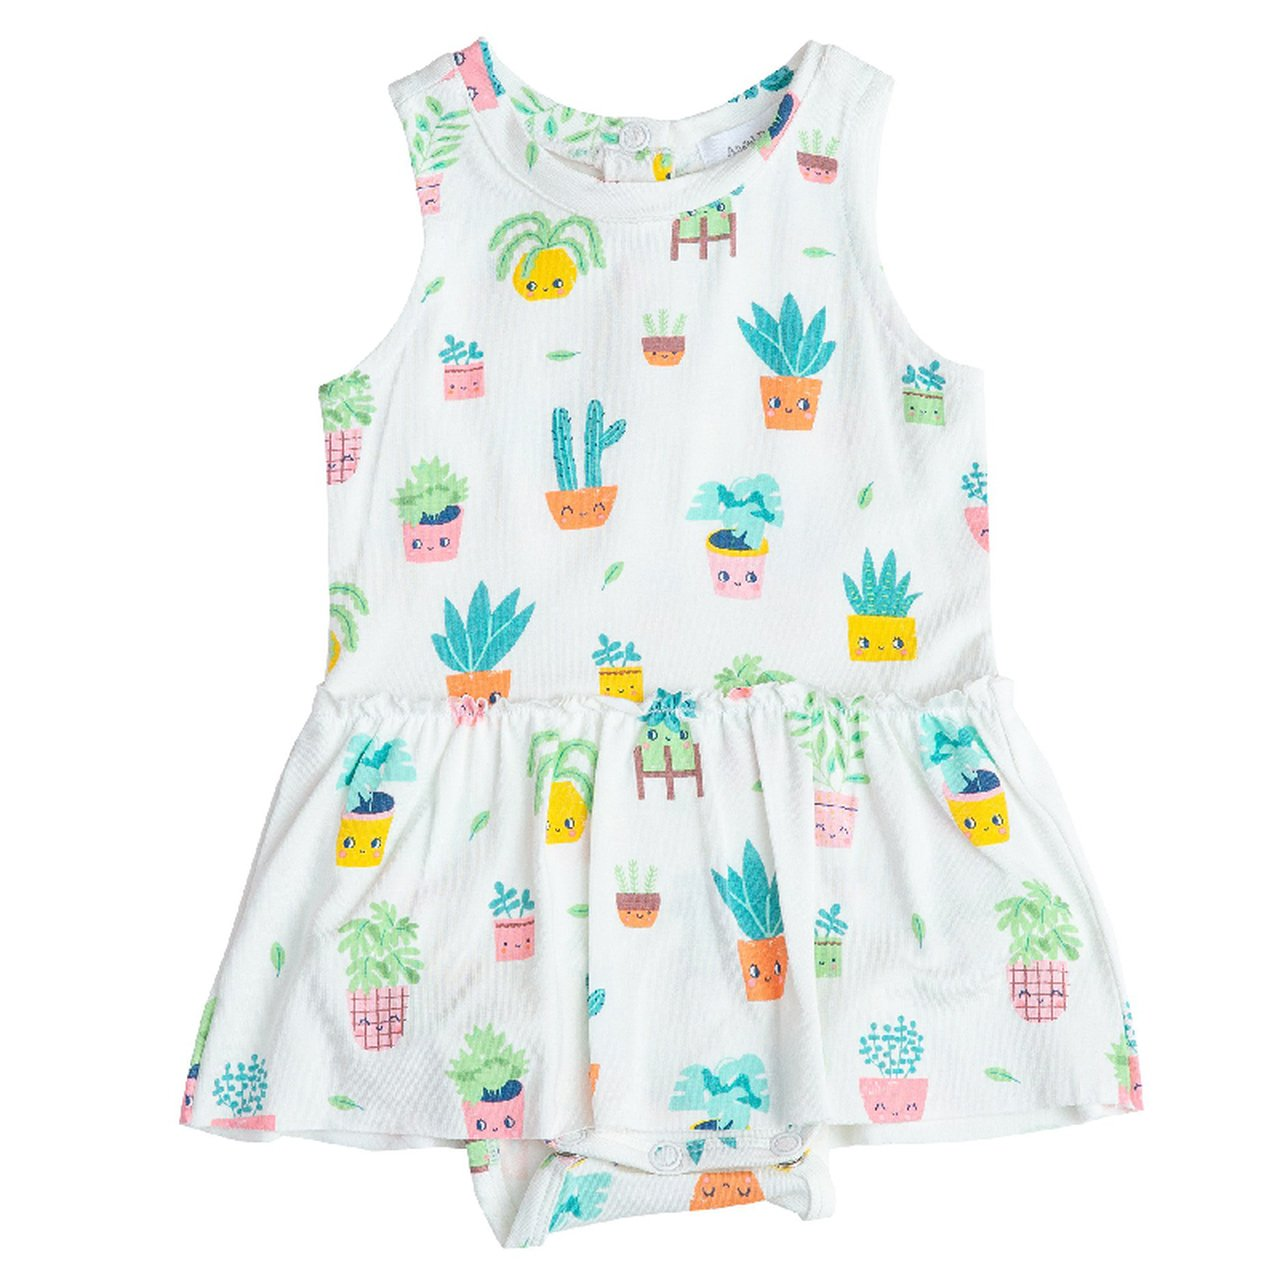 House Plant Pals Onesie Dress by Angel Dear